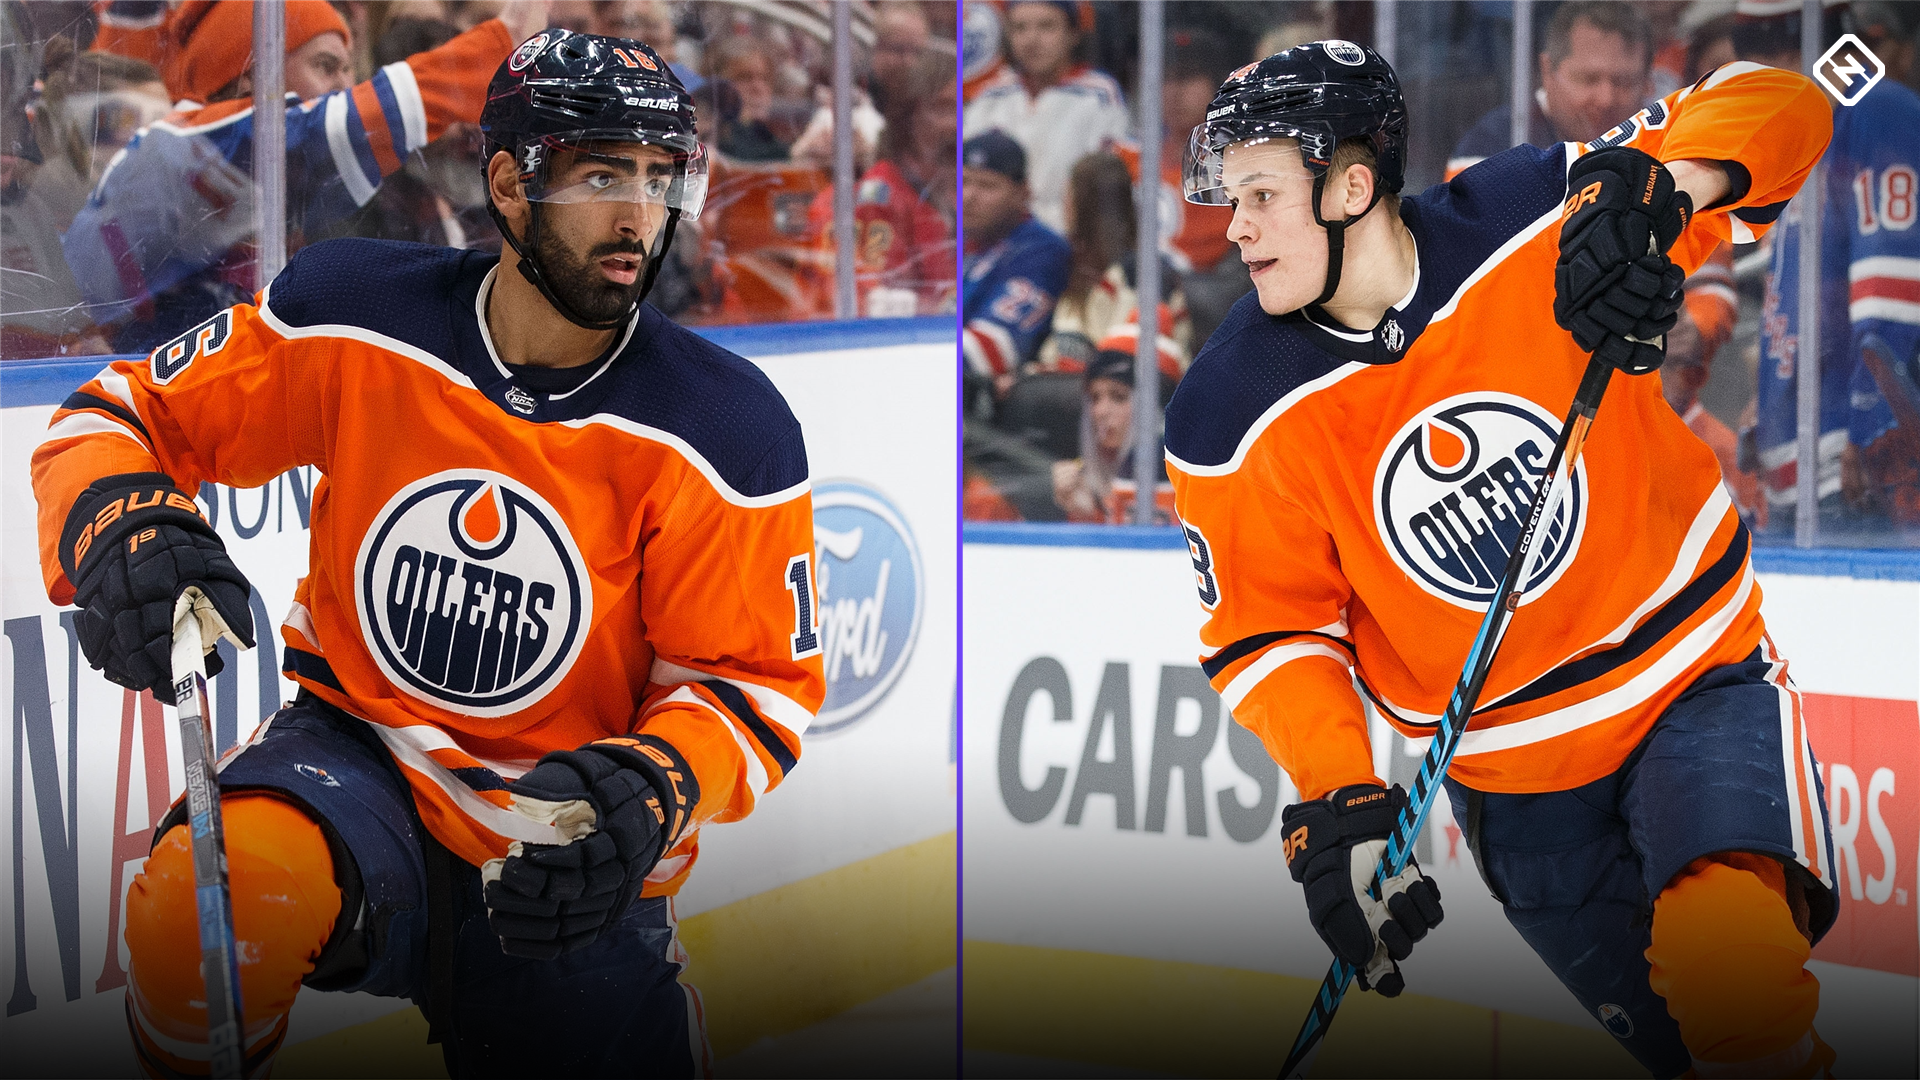 NHL free agency 2019: Oilers issue qualifying offers to Jujhar Khaira, Jesse Puljujarvi